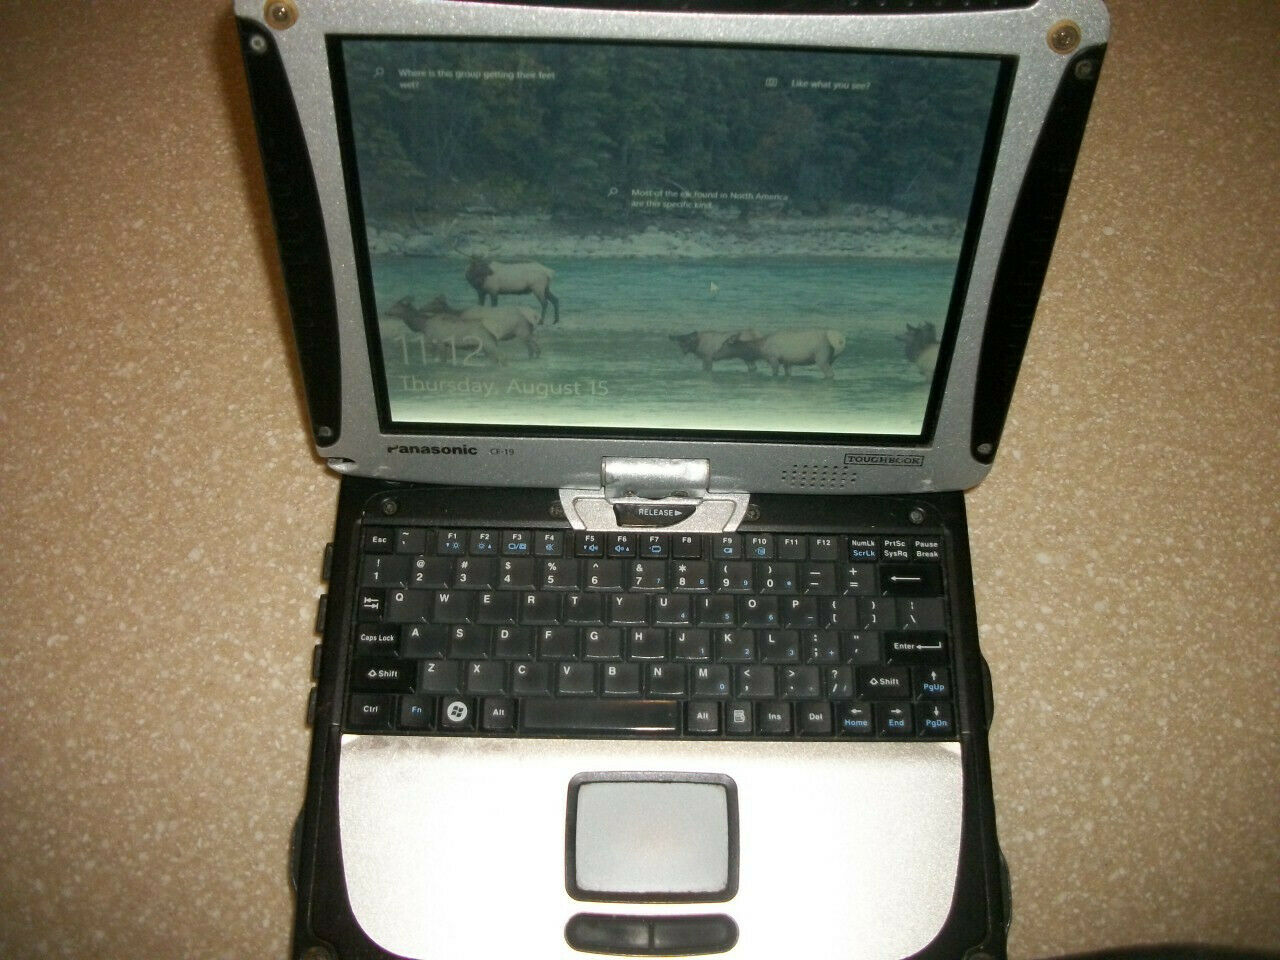 Panasonic Toughbook CF-19 10.4-Inch (250GB,Intel Core i5 1st Generation